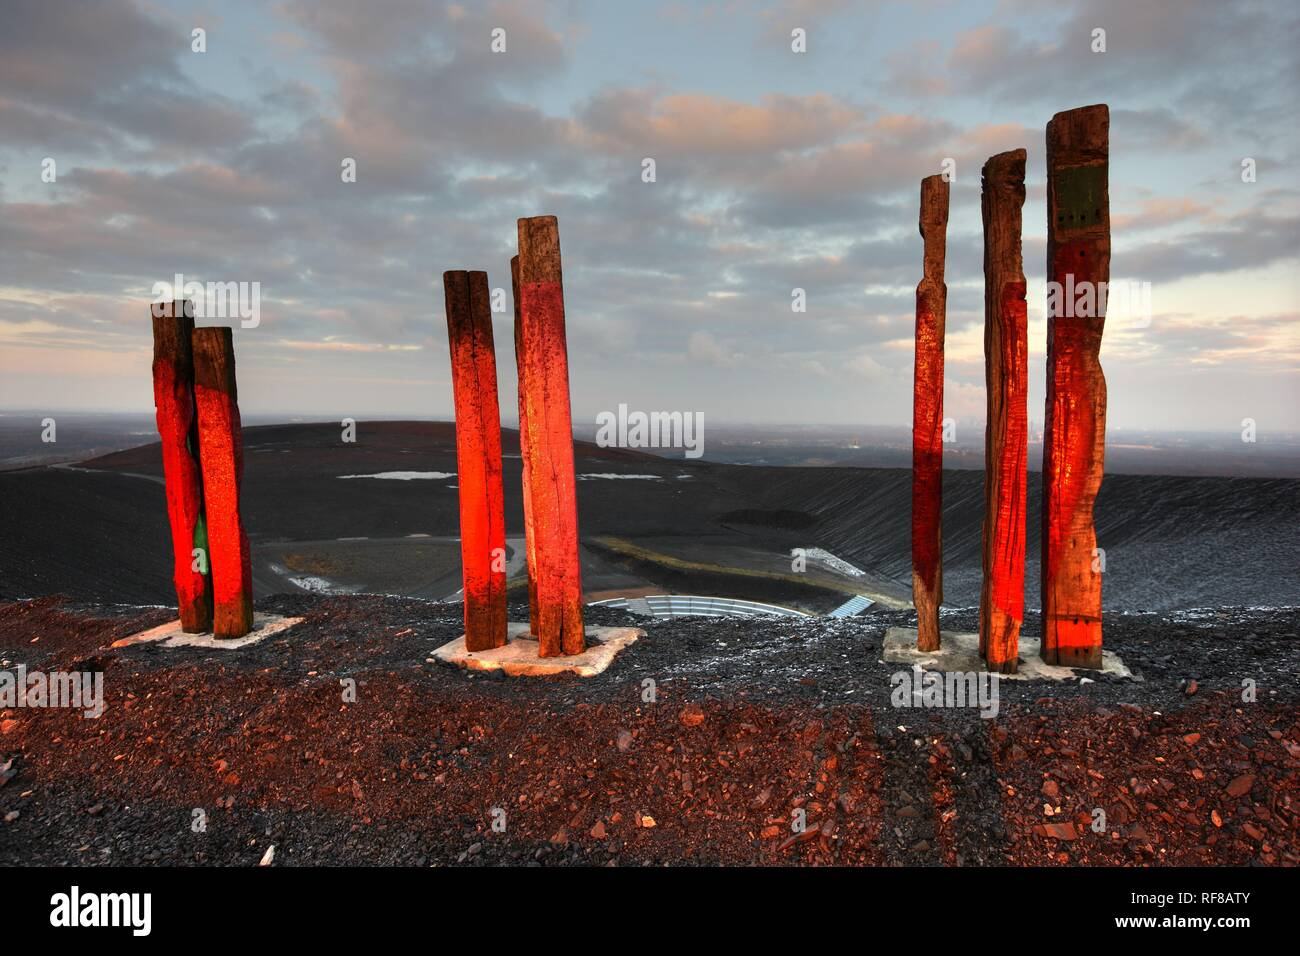 'Totems, ' installation art piece built from over 100 railroad ties by Basque artist Agustín Ibarrola on mining waste heaps - Stock Image